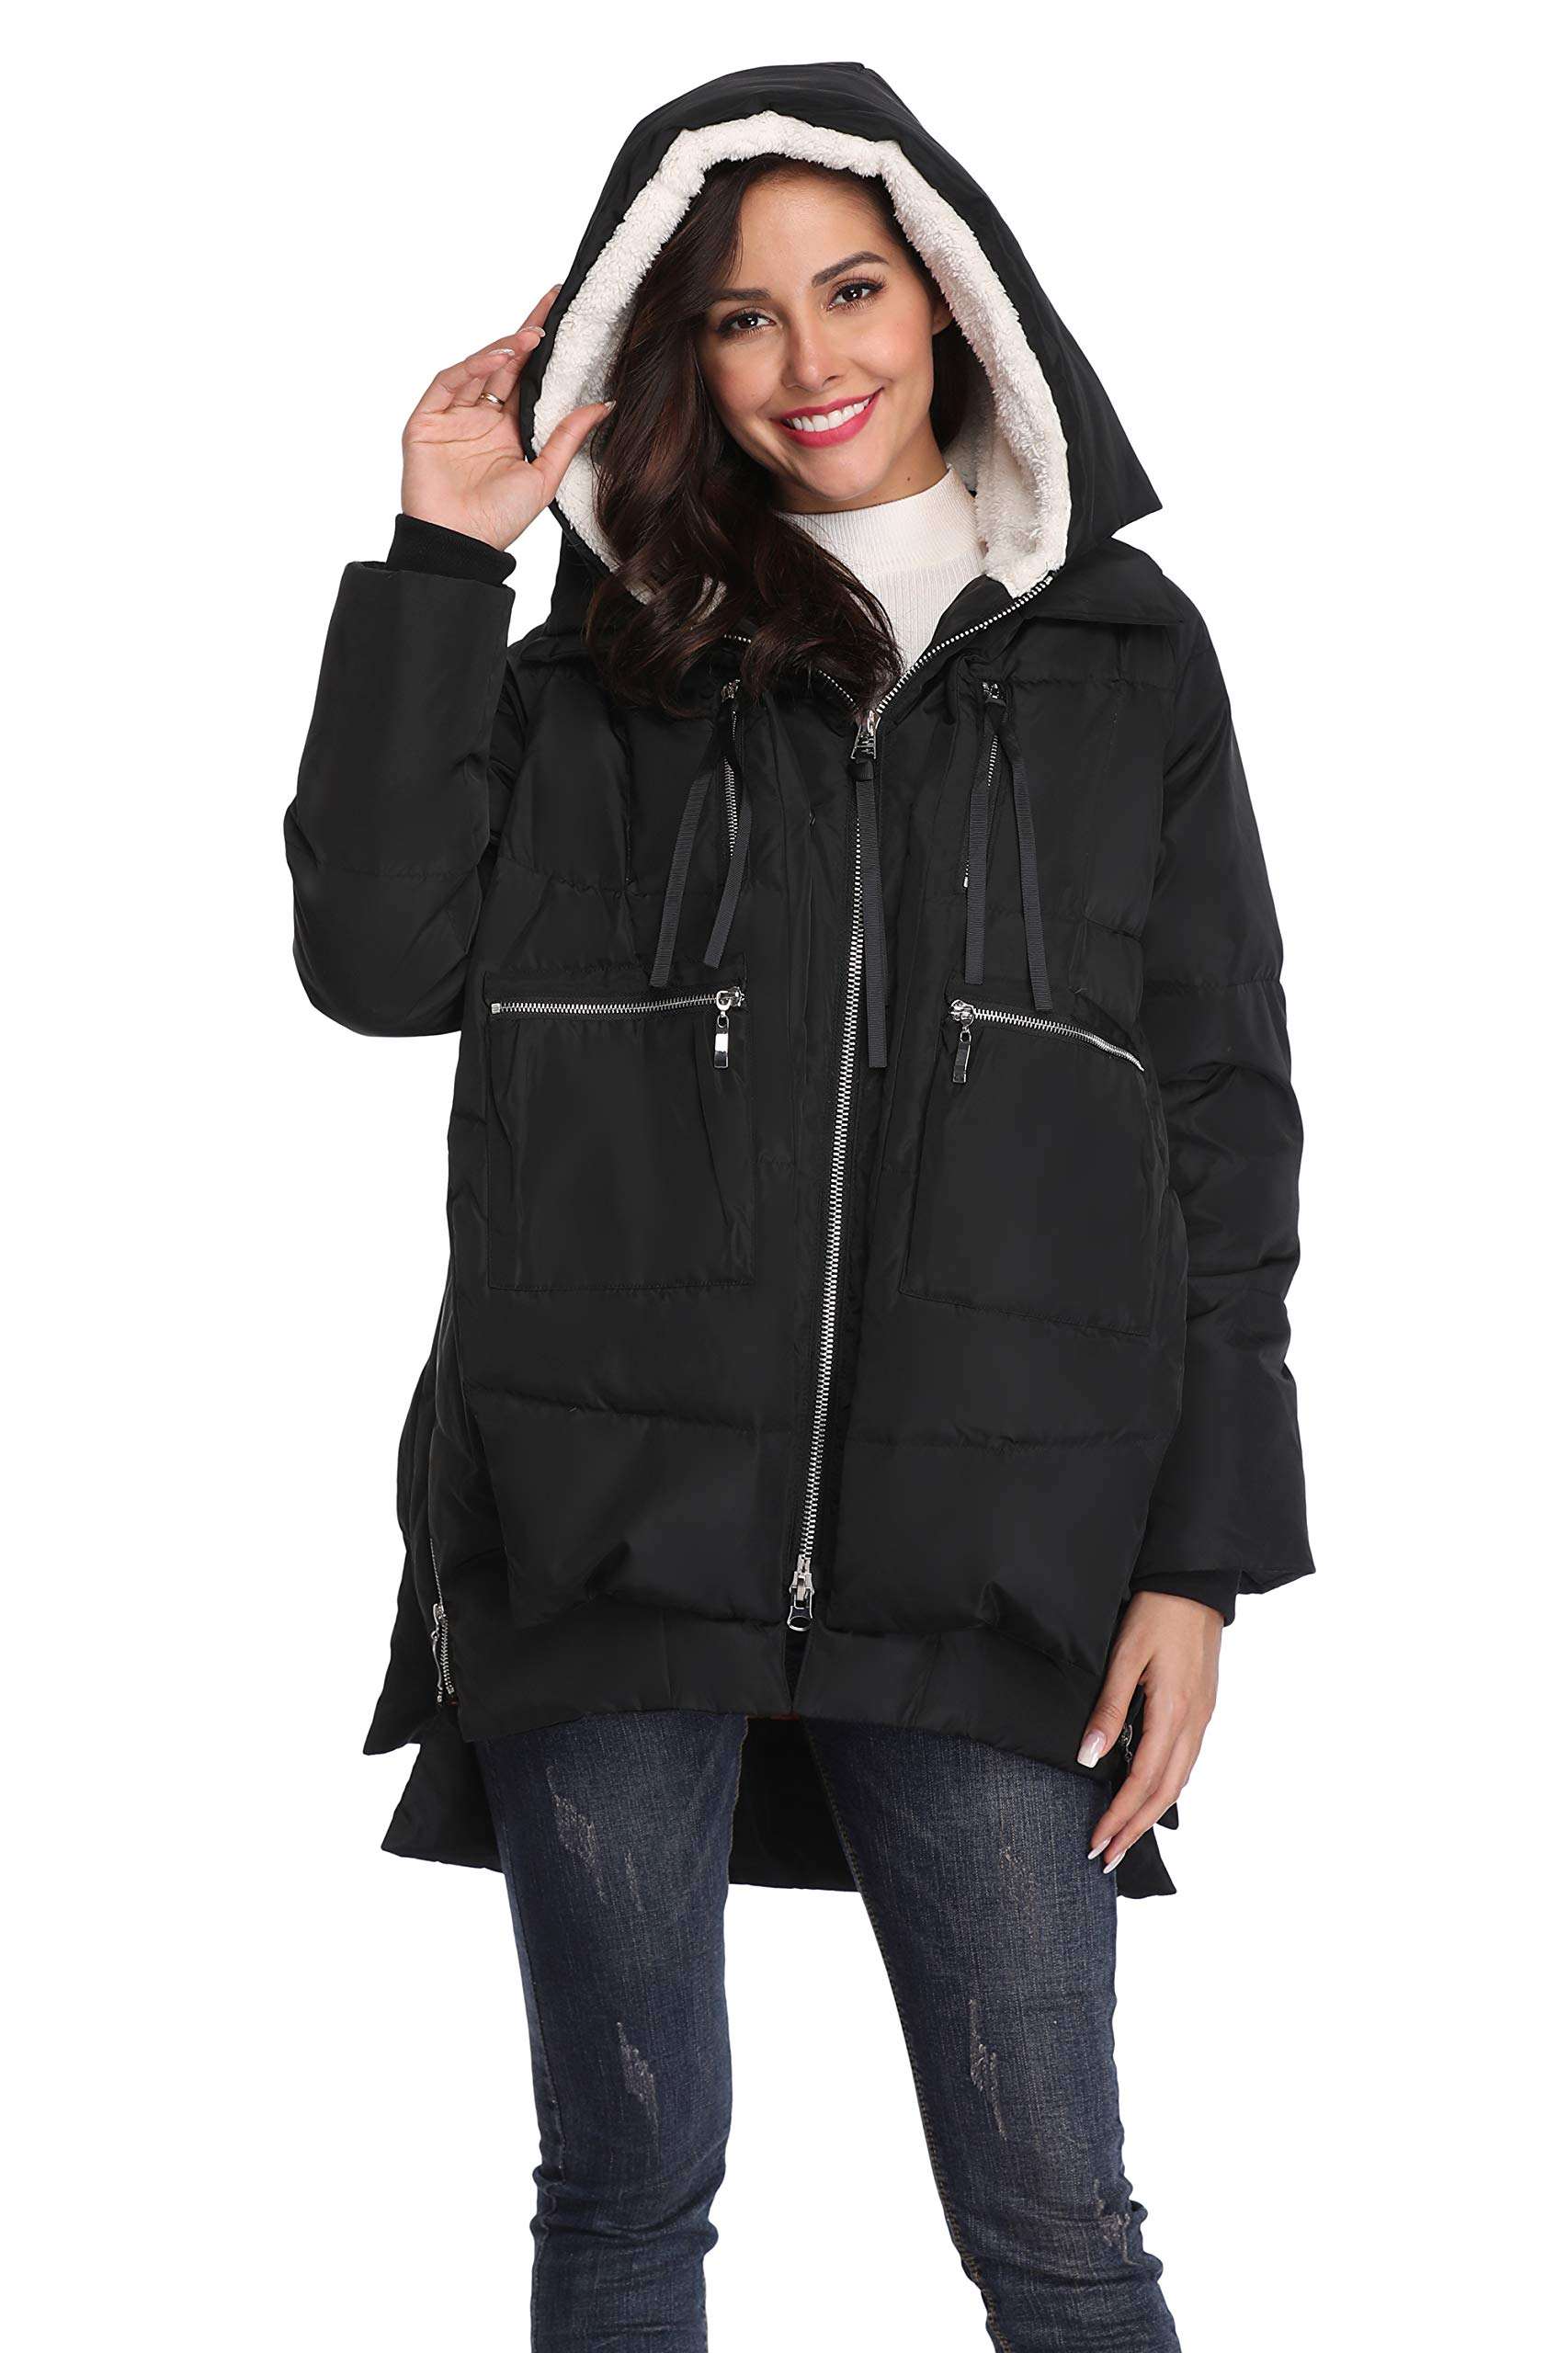 Shanghai Bund Women's Thickened Down Jacket with Hood Winter Warm Hooded Parka Coat